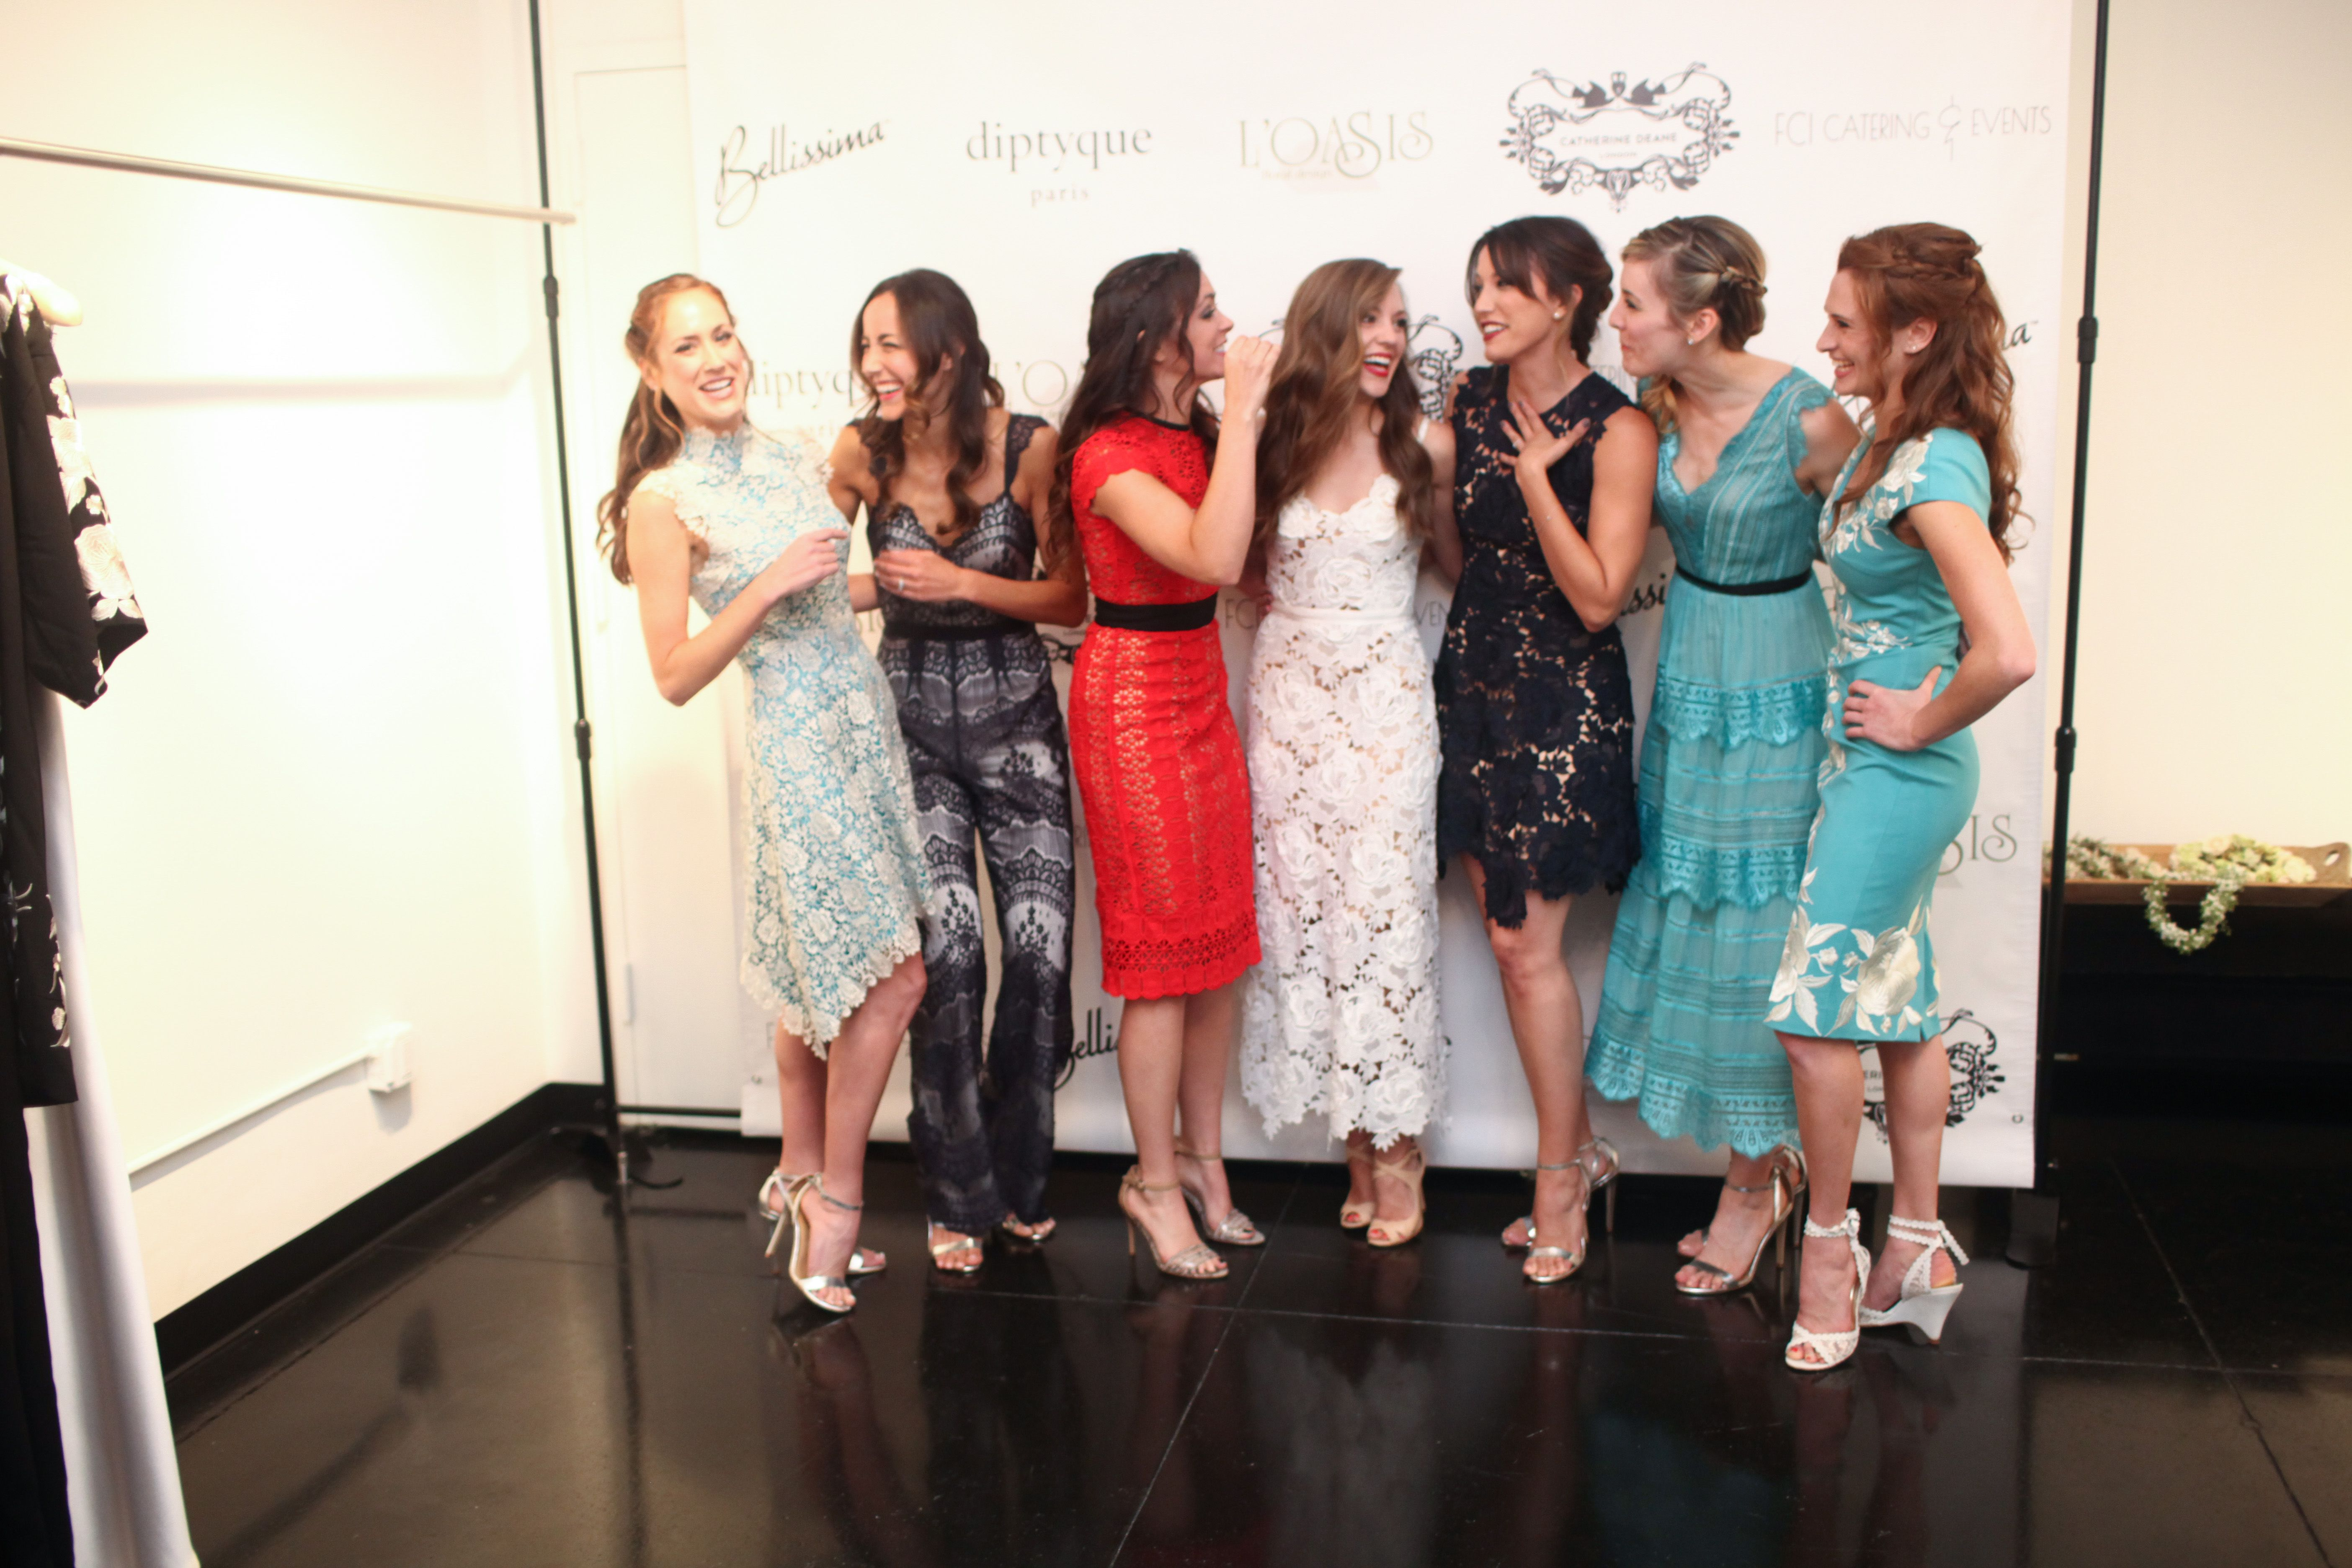 Models and Laura Osnes- Models wear SS17 RTW designs by Catherine Deane